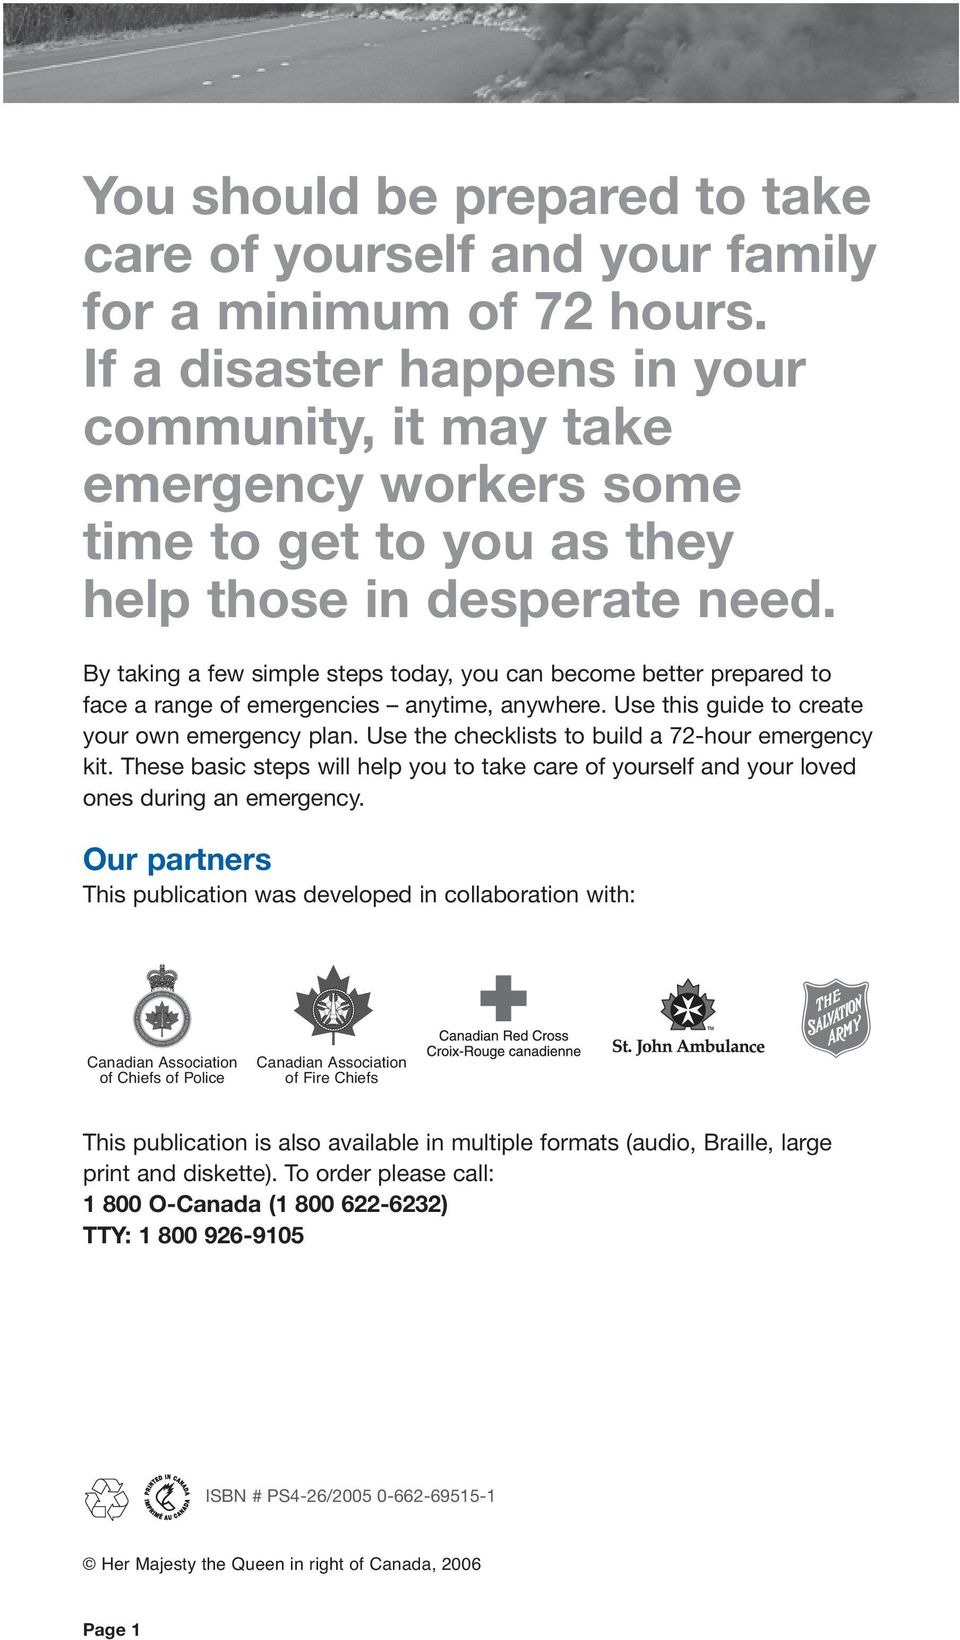 By taking a few simple steps today, you can become better prepared to face a range of emergencies anytime, anywhere. Use this guide to create your own emergency plan.